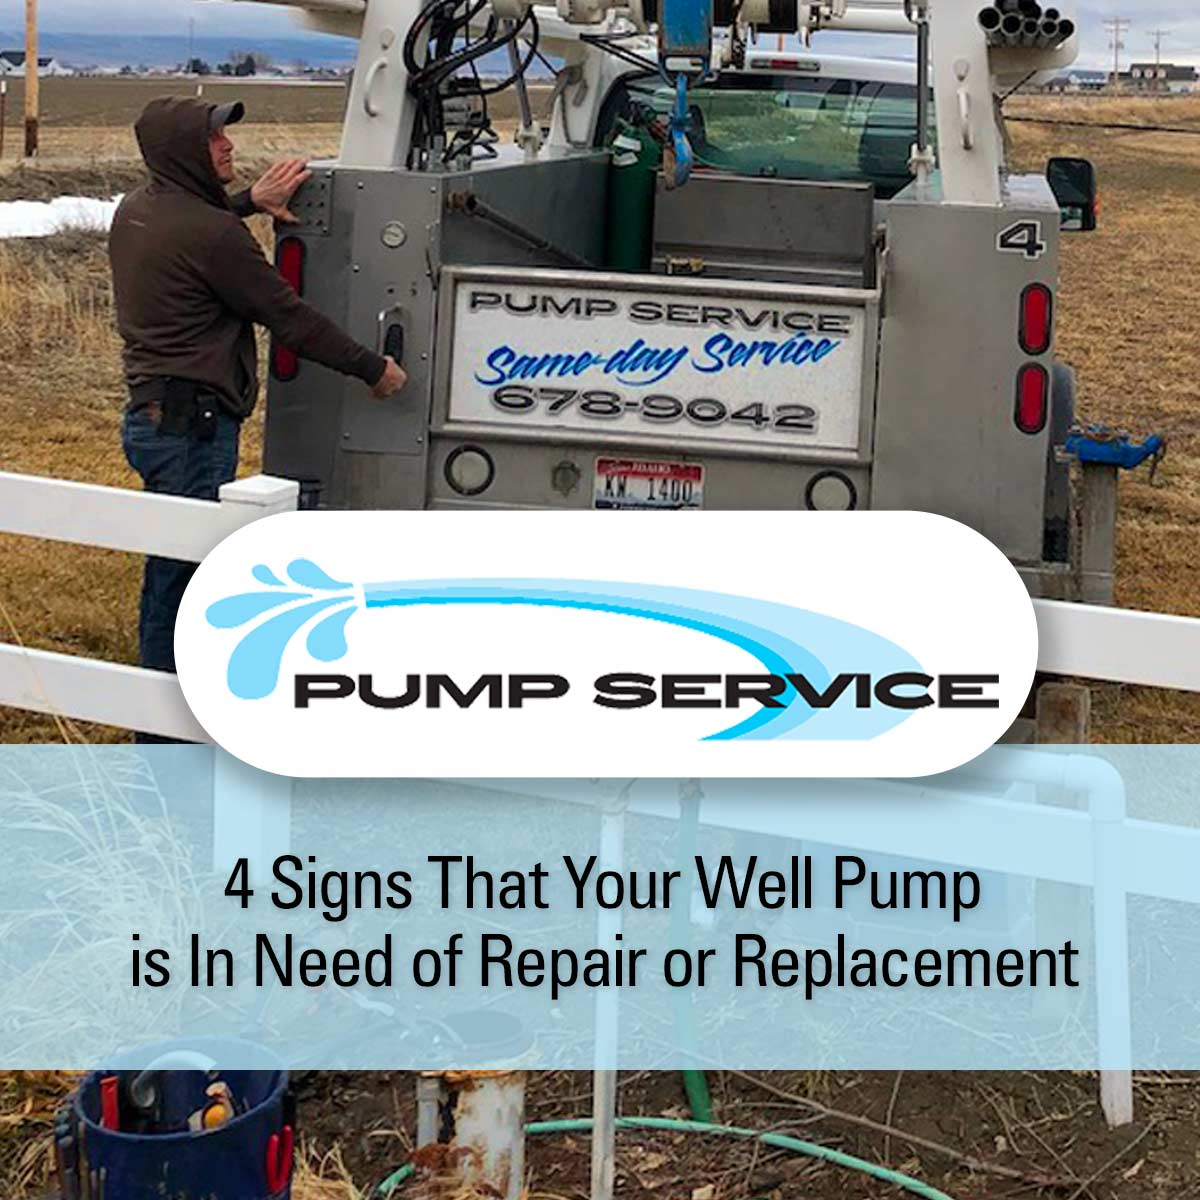 4 Signs That Your Well Pump is In Need of Repair or Replacement